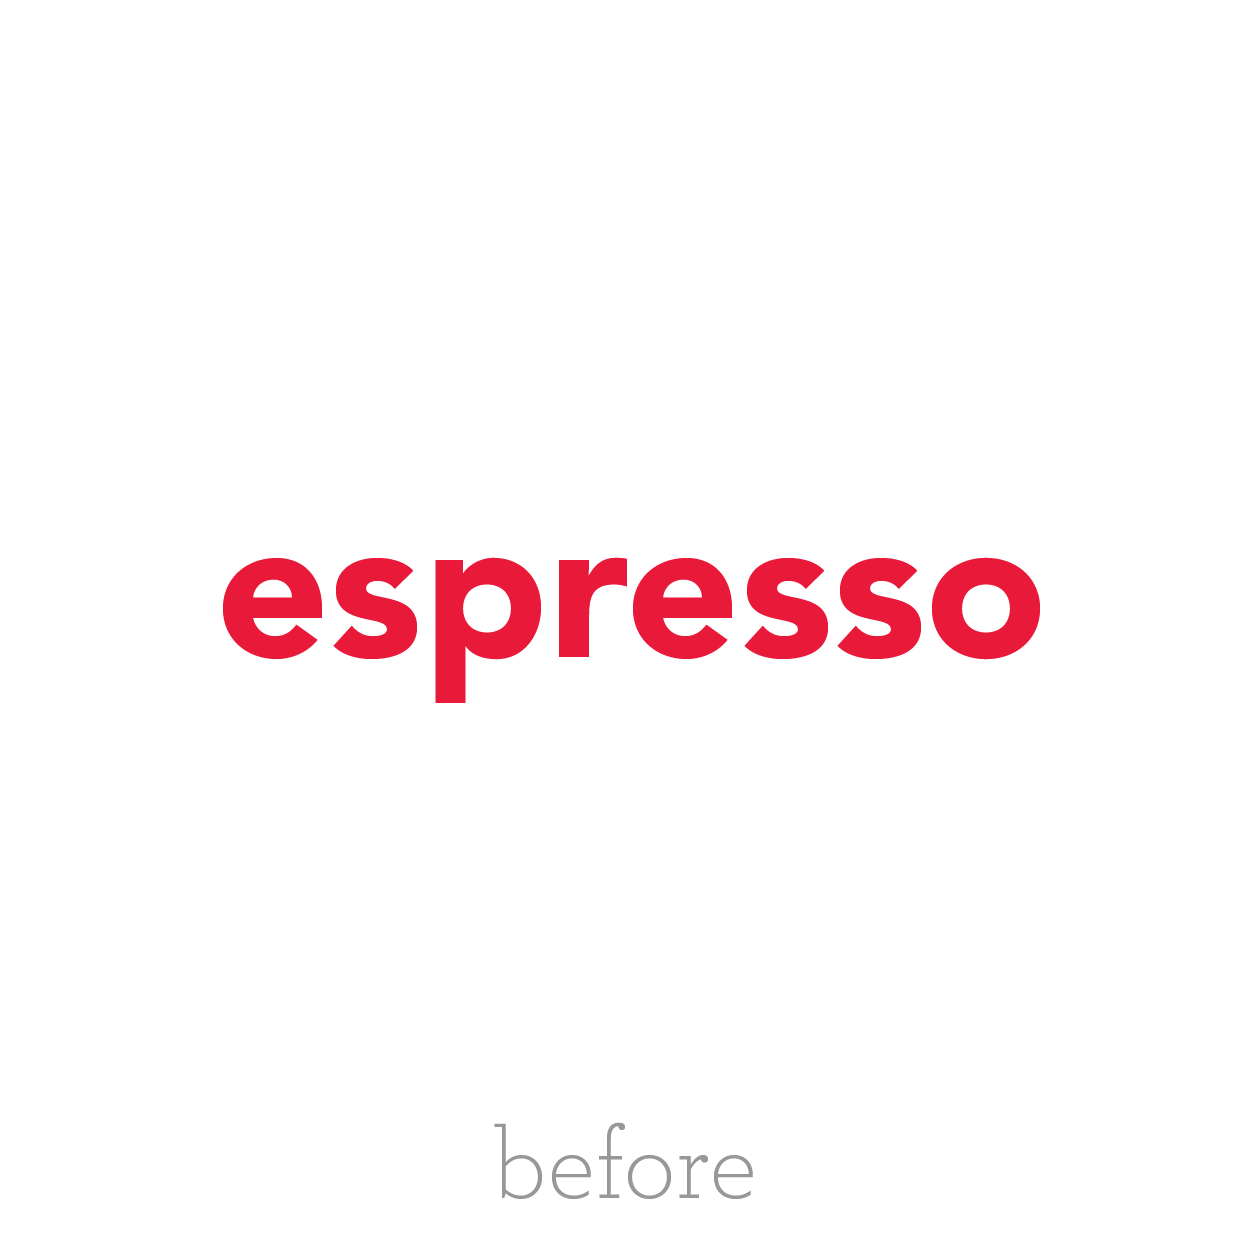 before_logo-01.png